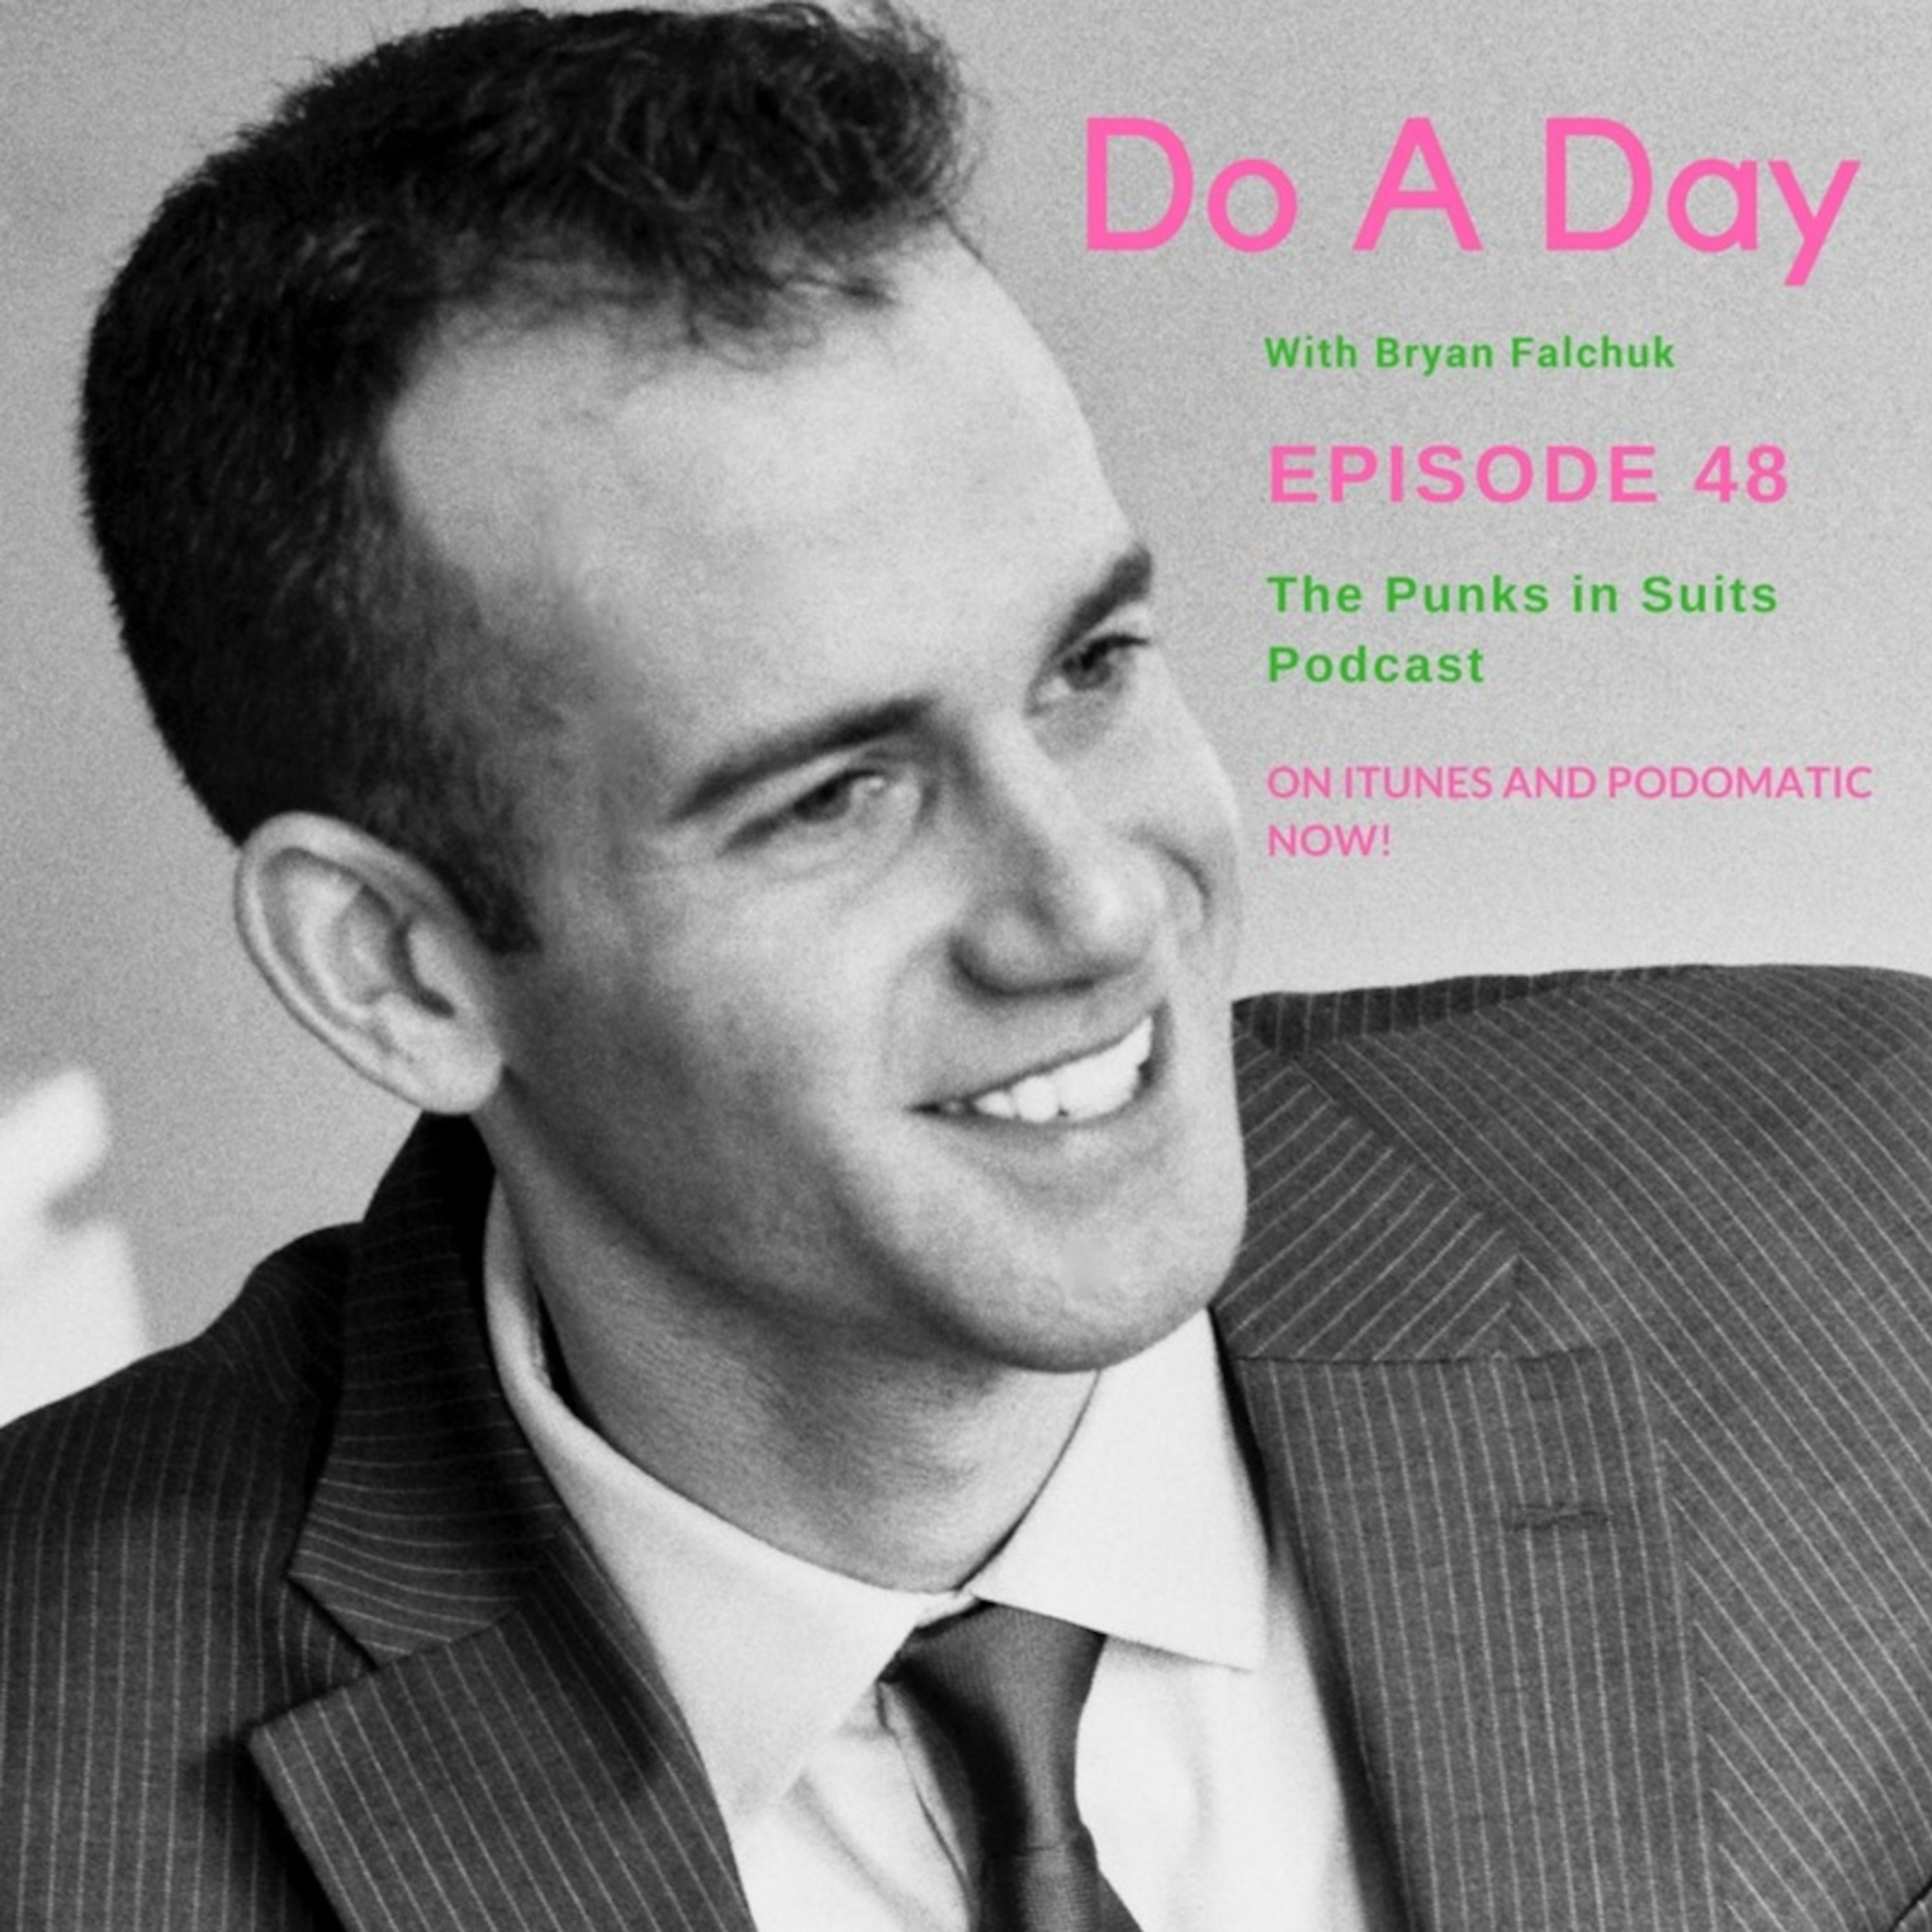 Episode 48: Do A Day - An Interview with Bryan Falchuk